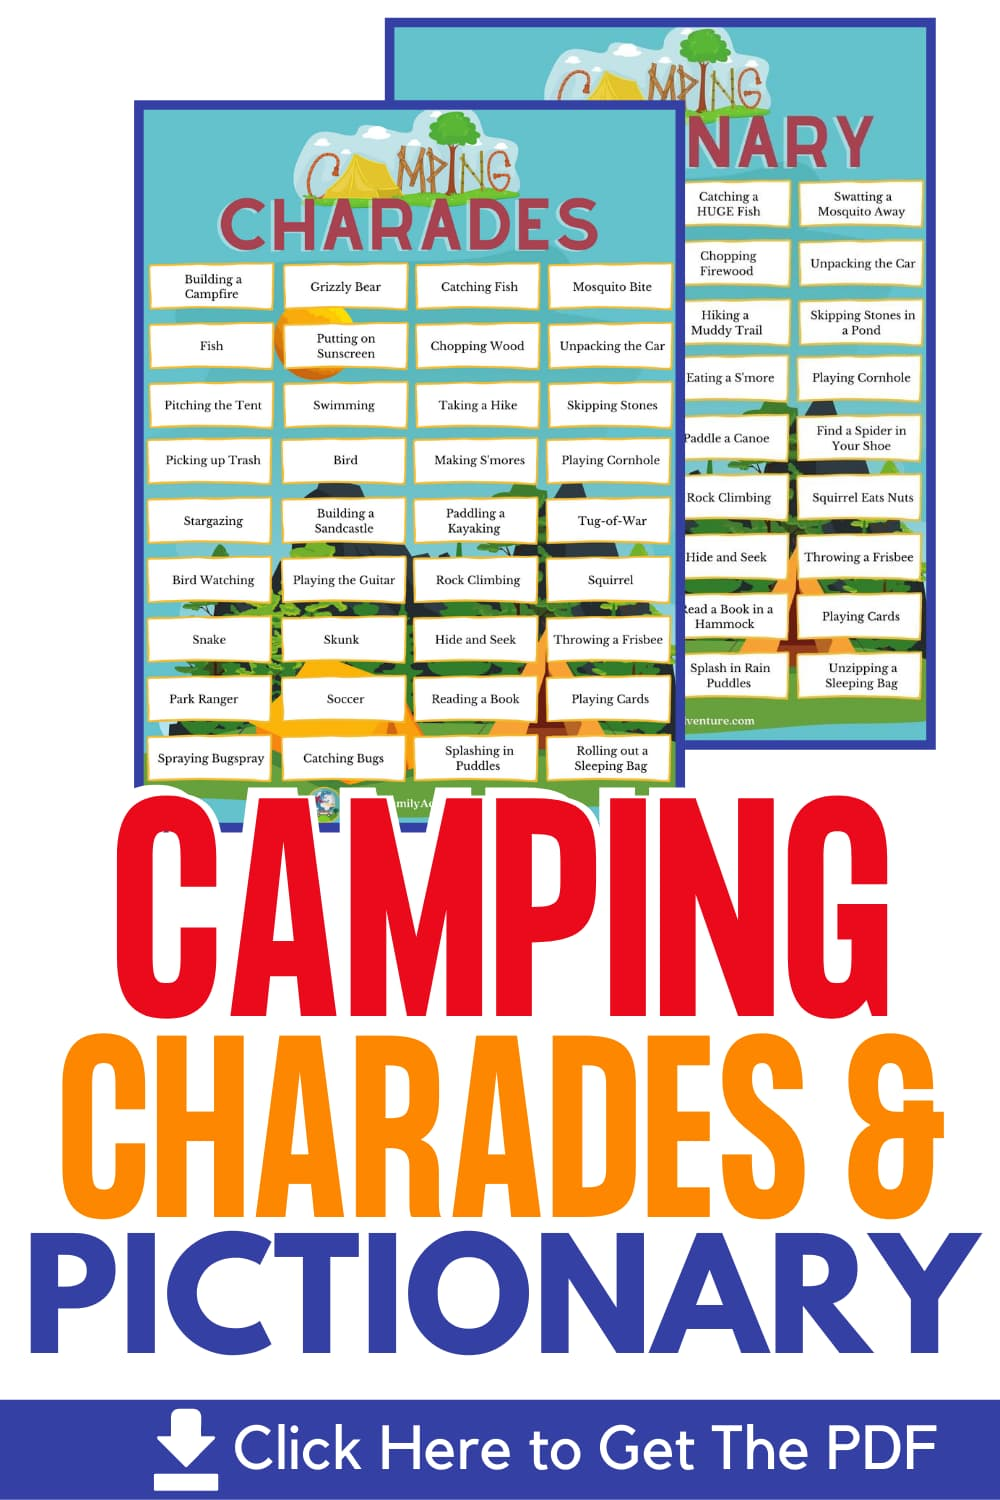 camping themed word prompts for charades